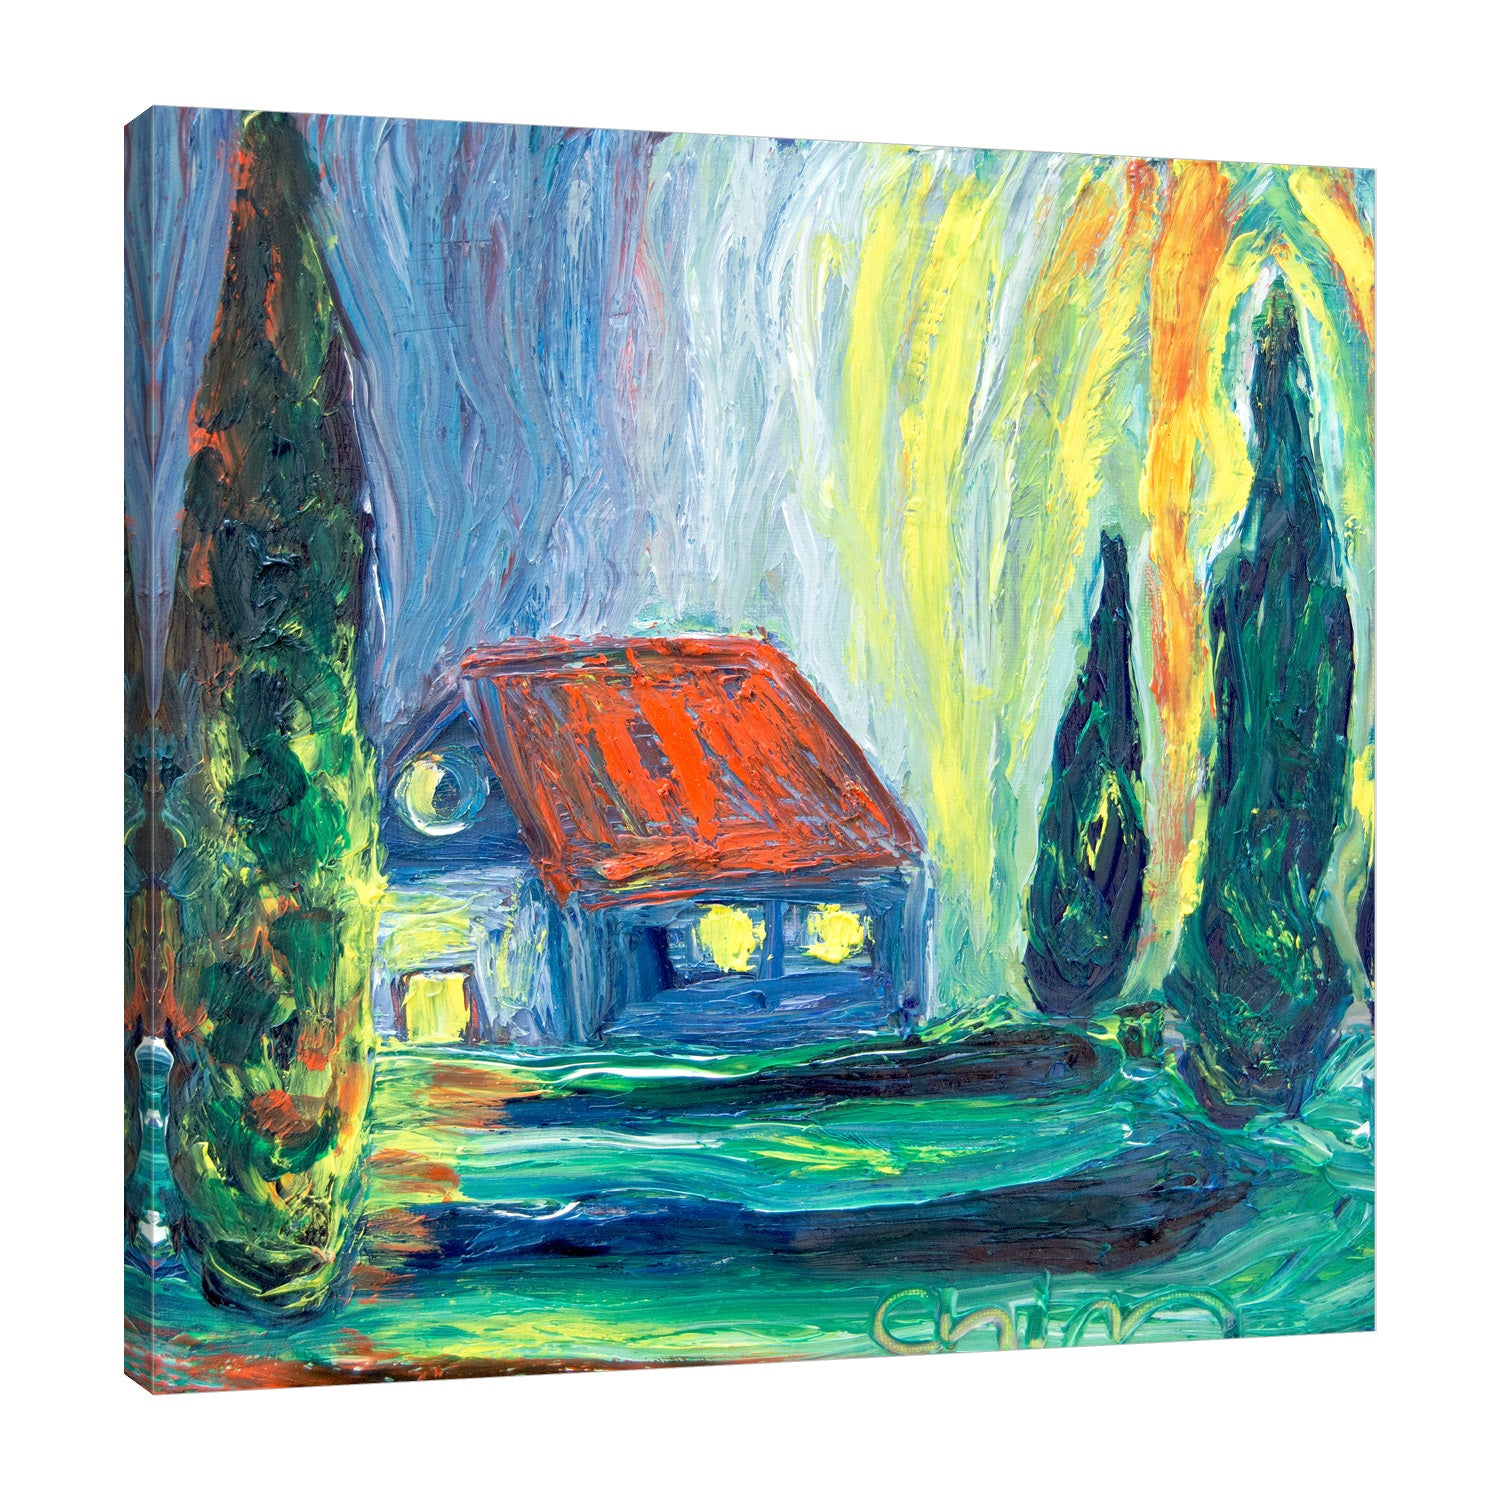 Chiara-Magni,Modern & Contemporary,Landscape & Nature,Finger-paint,house,houses,home,trees,garden,blue,green,yellow,orange,